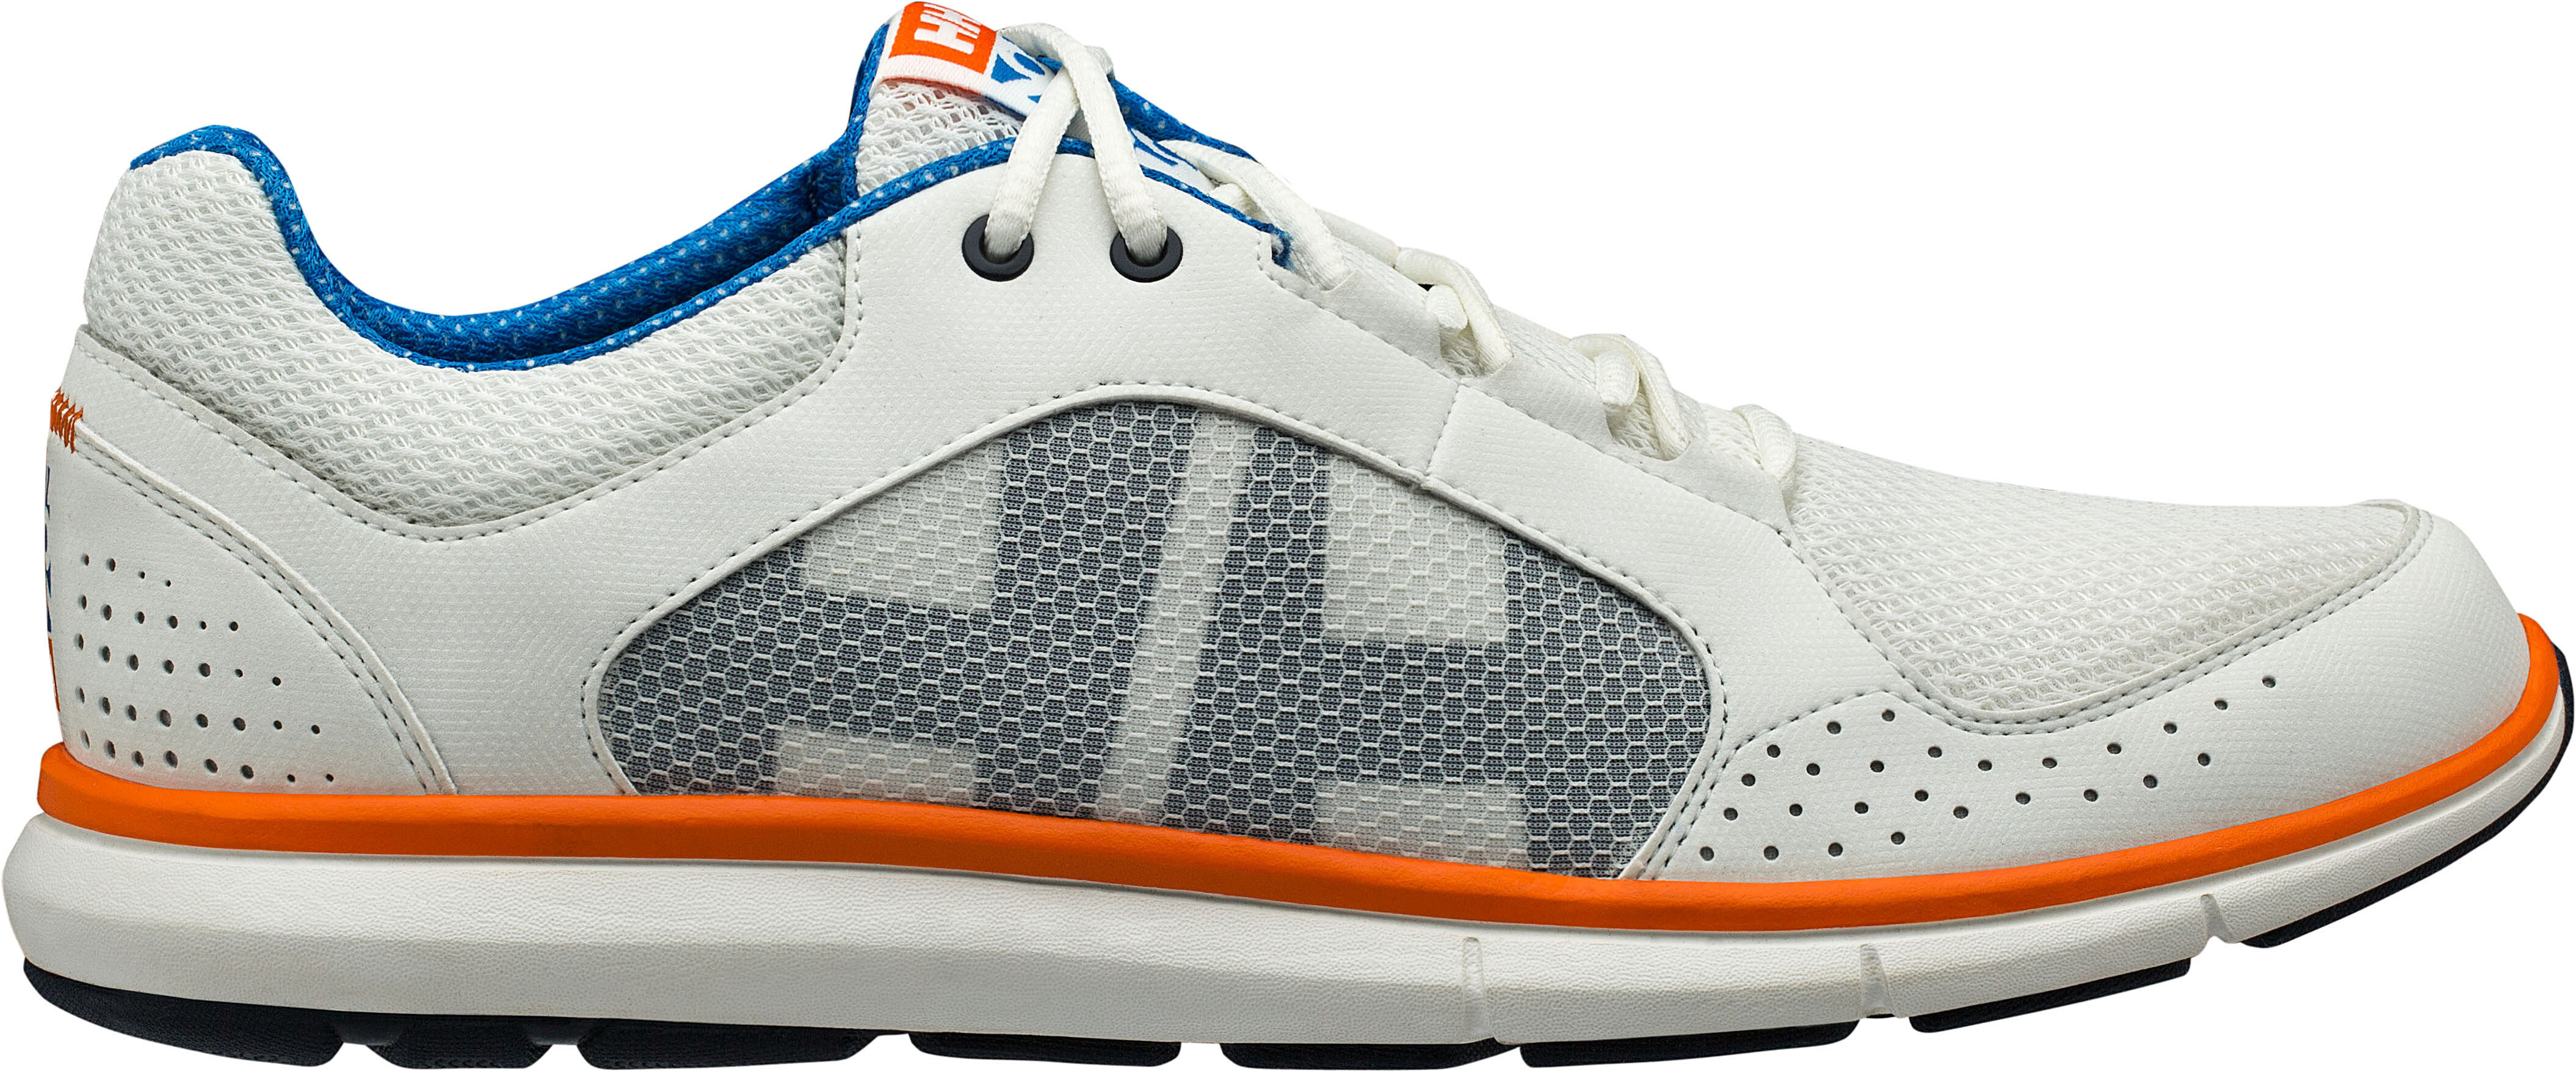 82821018dba Helly Hansen Ahiga V3 Hydropower Shoes Men white at Addnature.co.uk